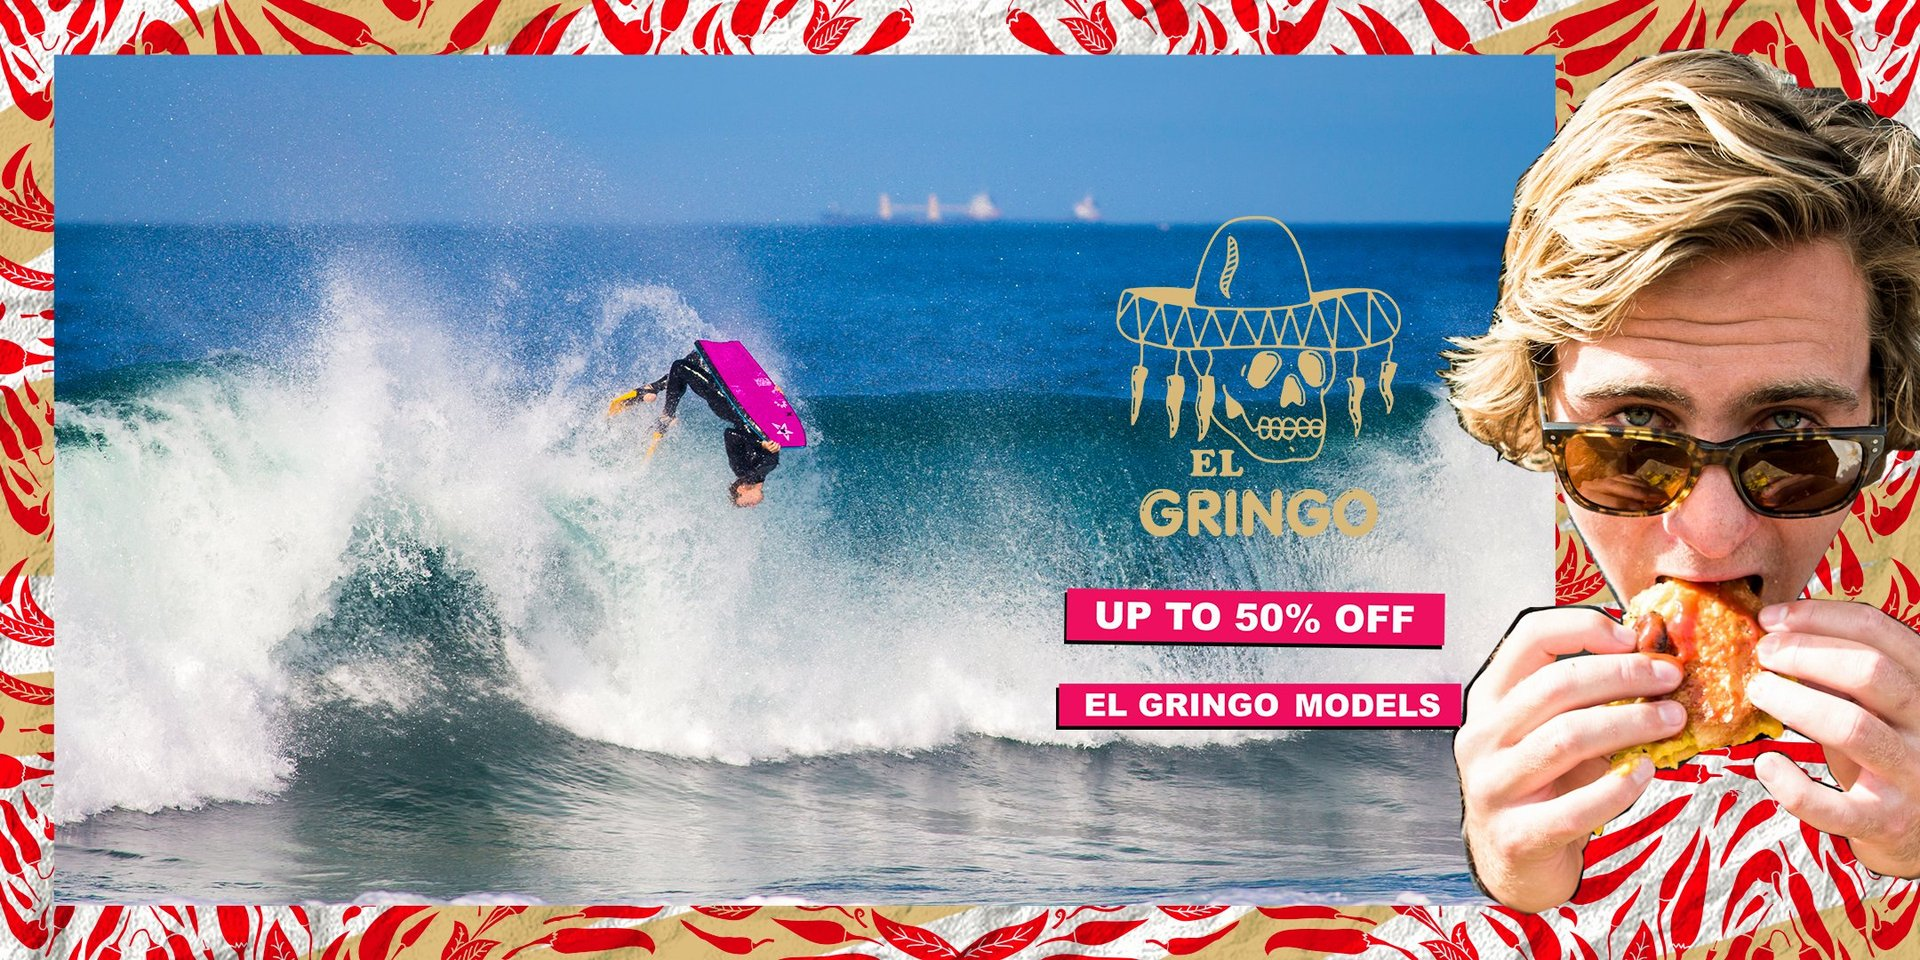 Stealth Bodyboards. High Quality brand producing Bodyboards, Swimfins, Flippers, Leashes, Accessories and other equipment. El Gringo George Humphreys Hawaii